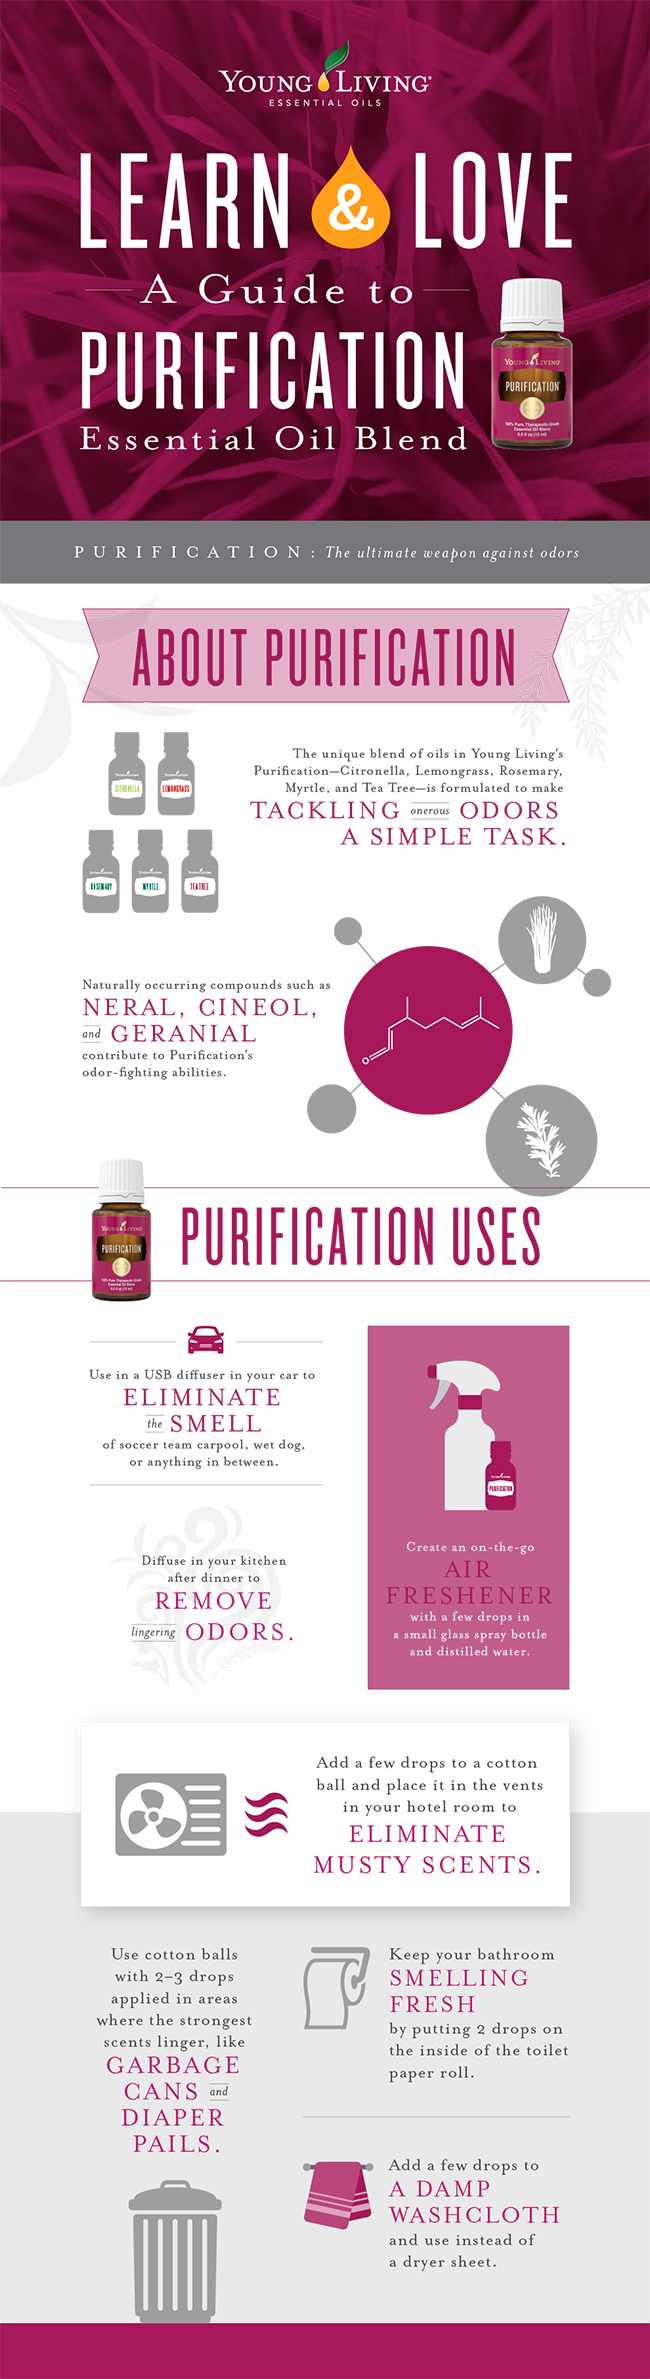 blog-Learn-Love-A-guide-to-Purification-essential-oil-blend_Infographic_US_Final.jpg